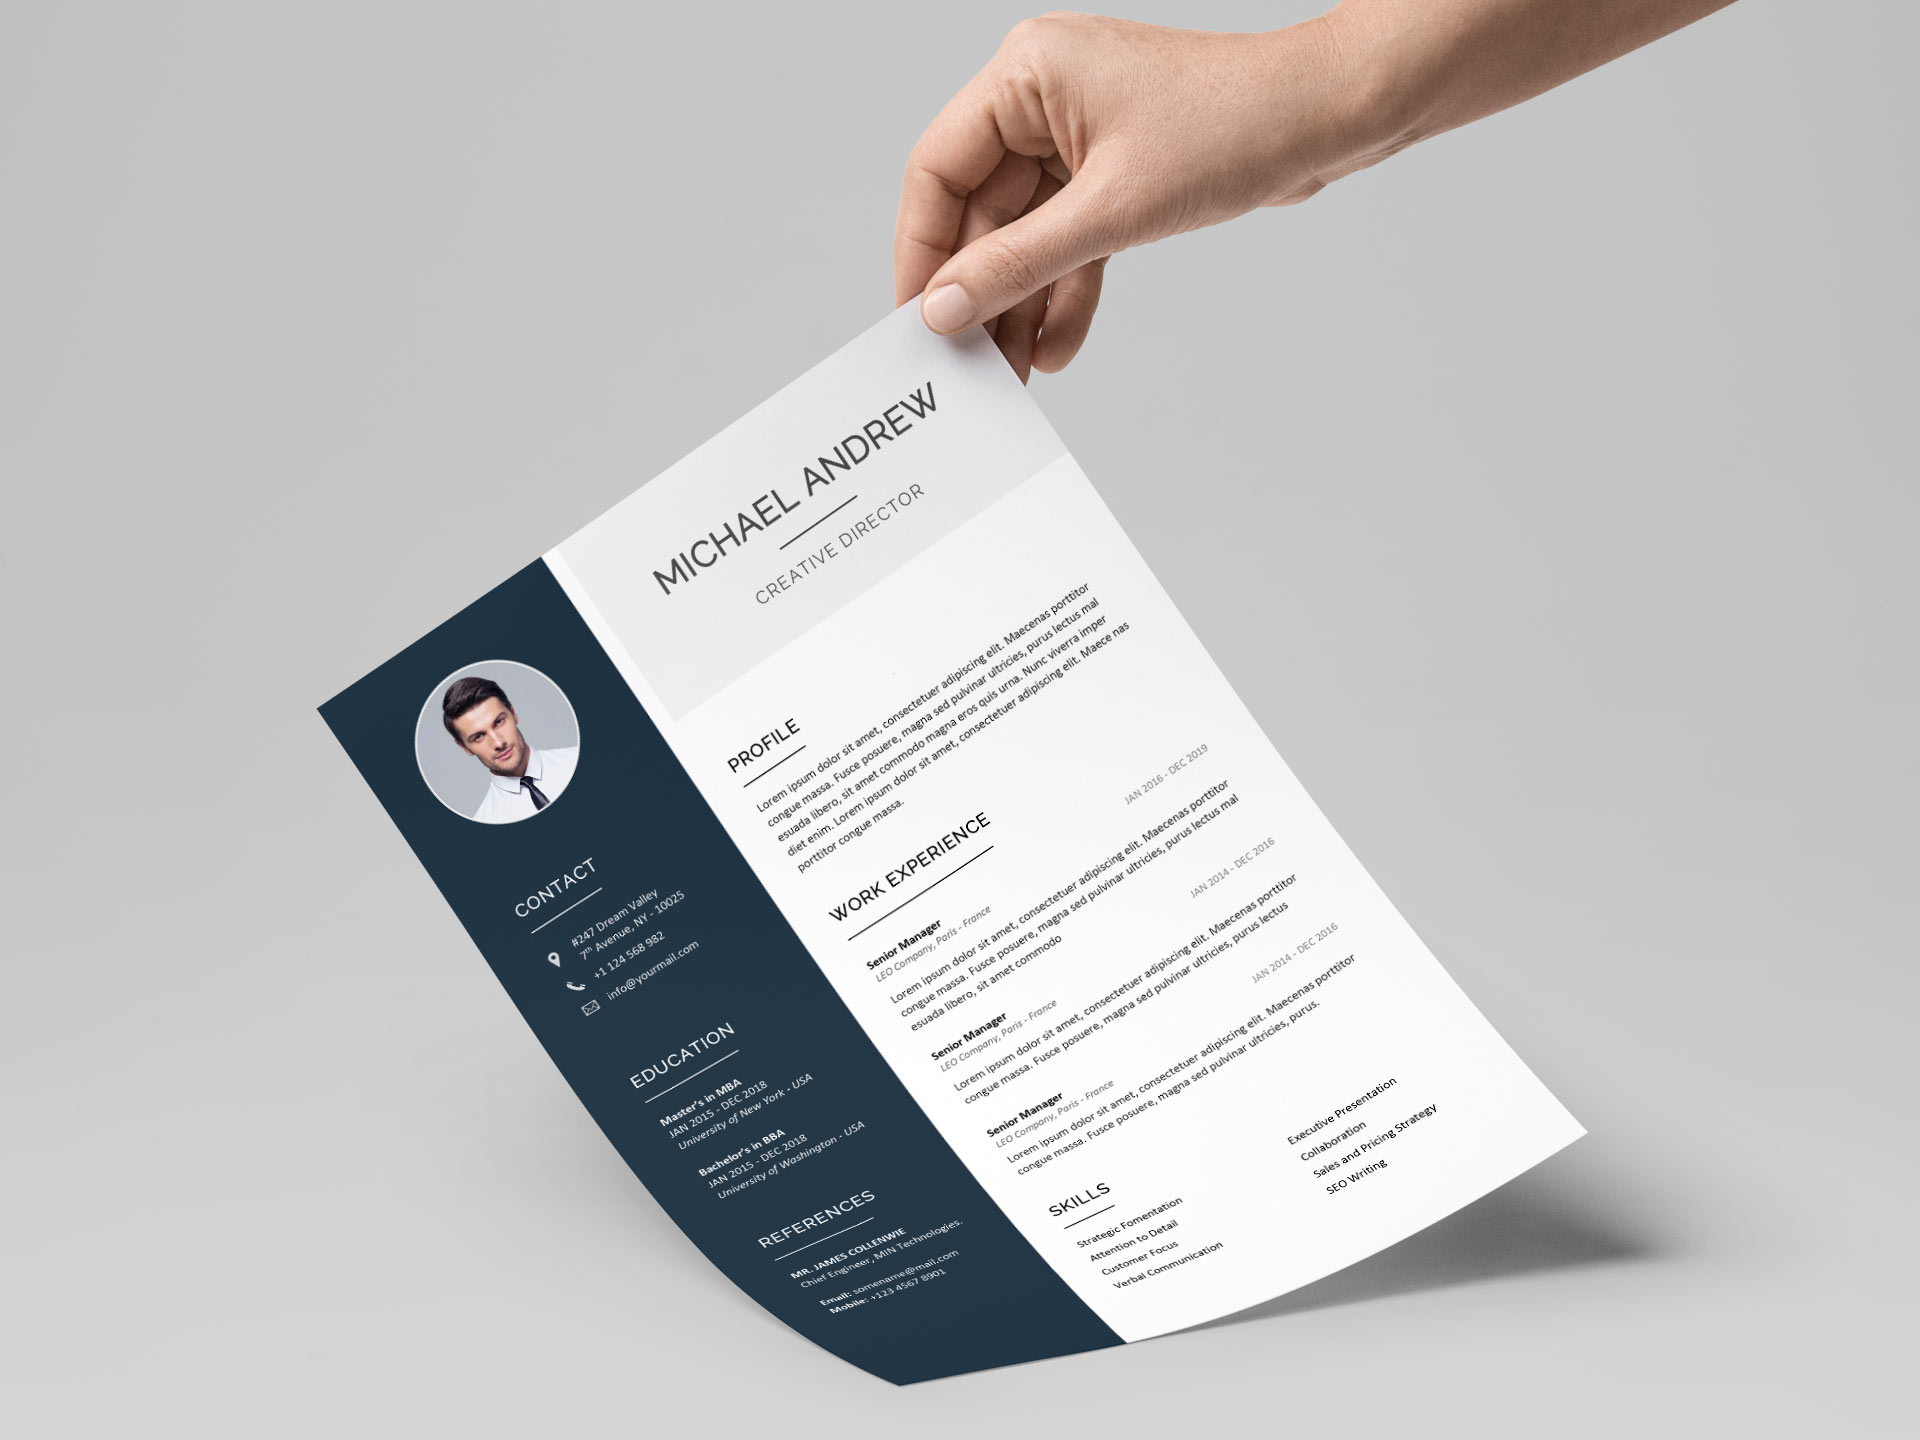 premium resume templates resumekraft attractive free prime template indeed won upload emt Resume Attractive Resume Templates Free Download